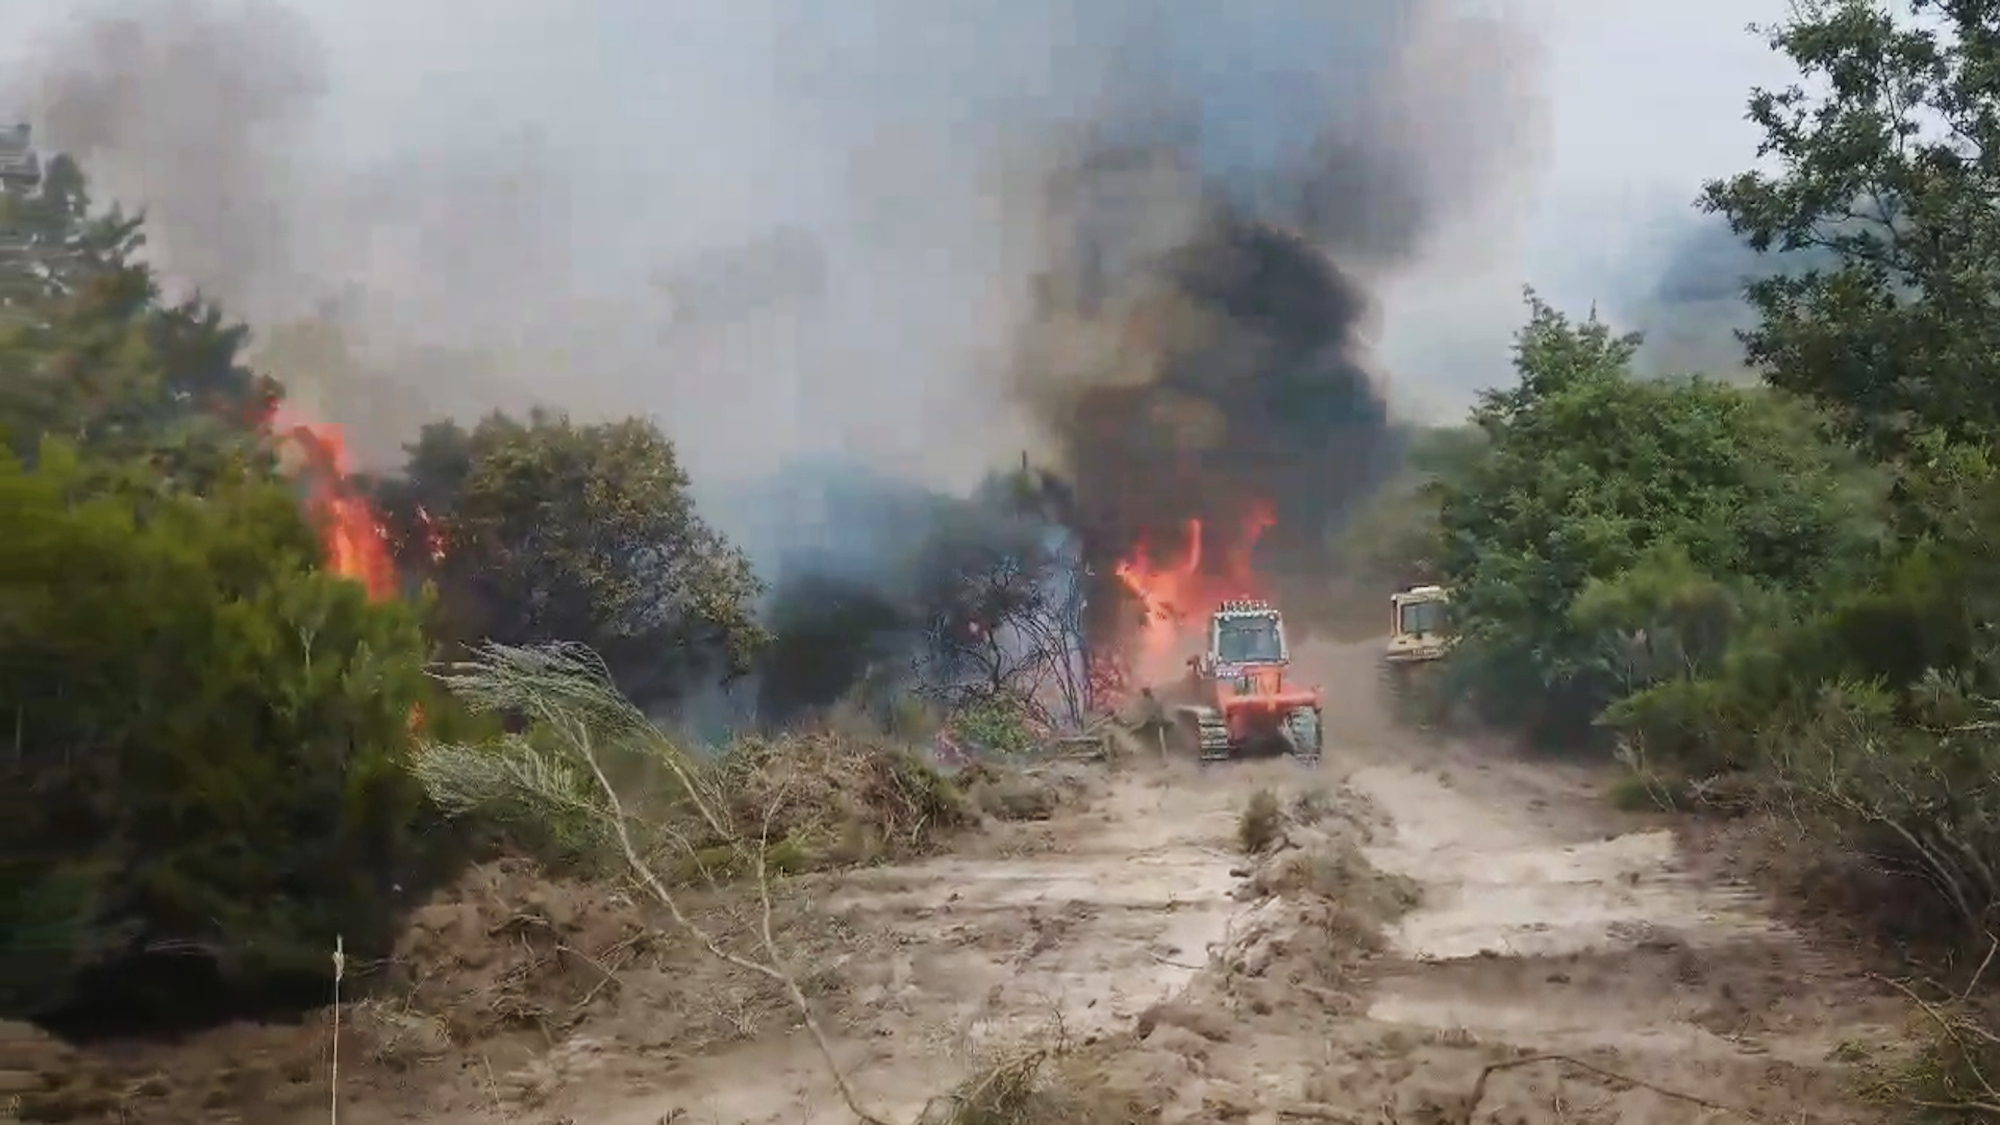 VIDEO: Wildfires Plague Northern Spain